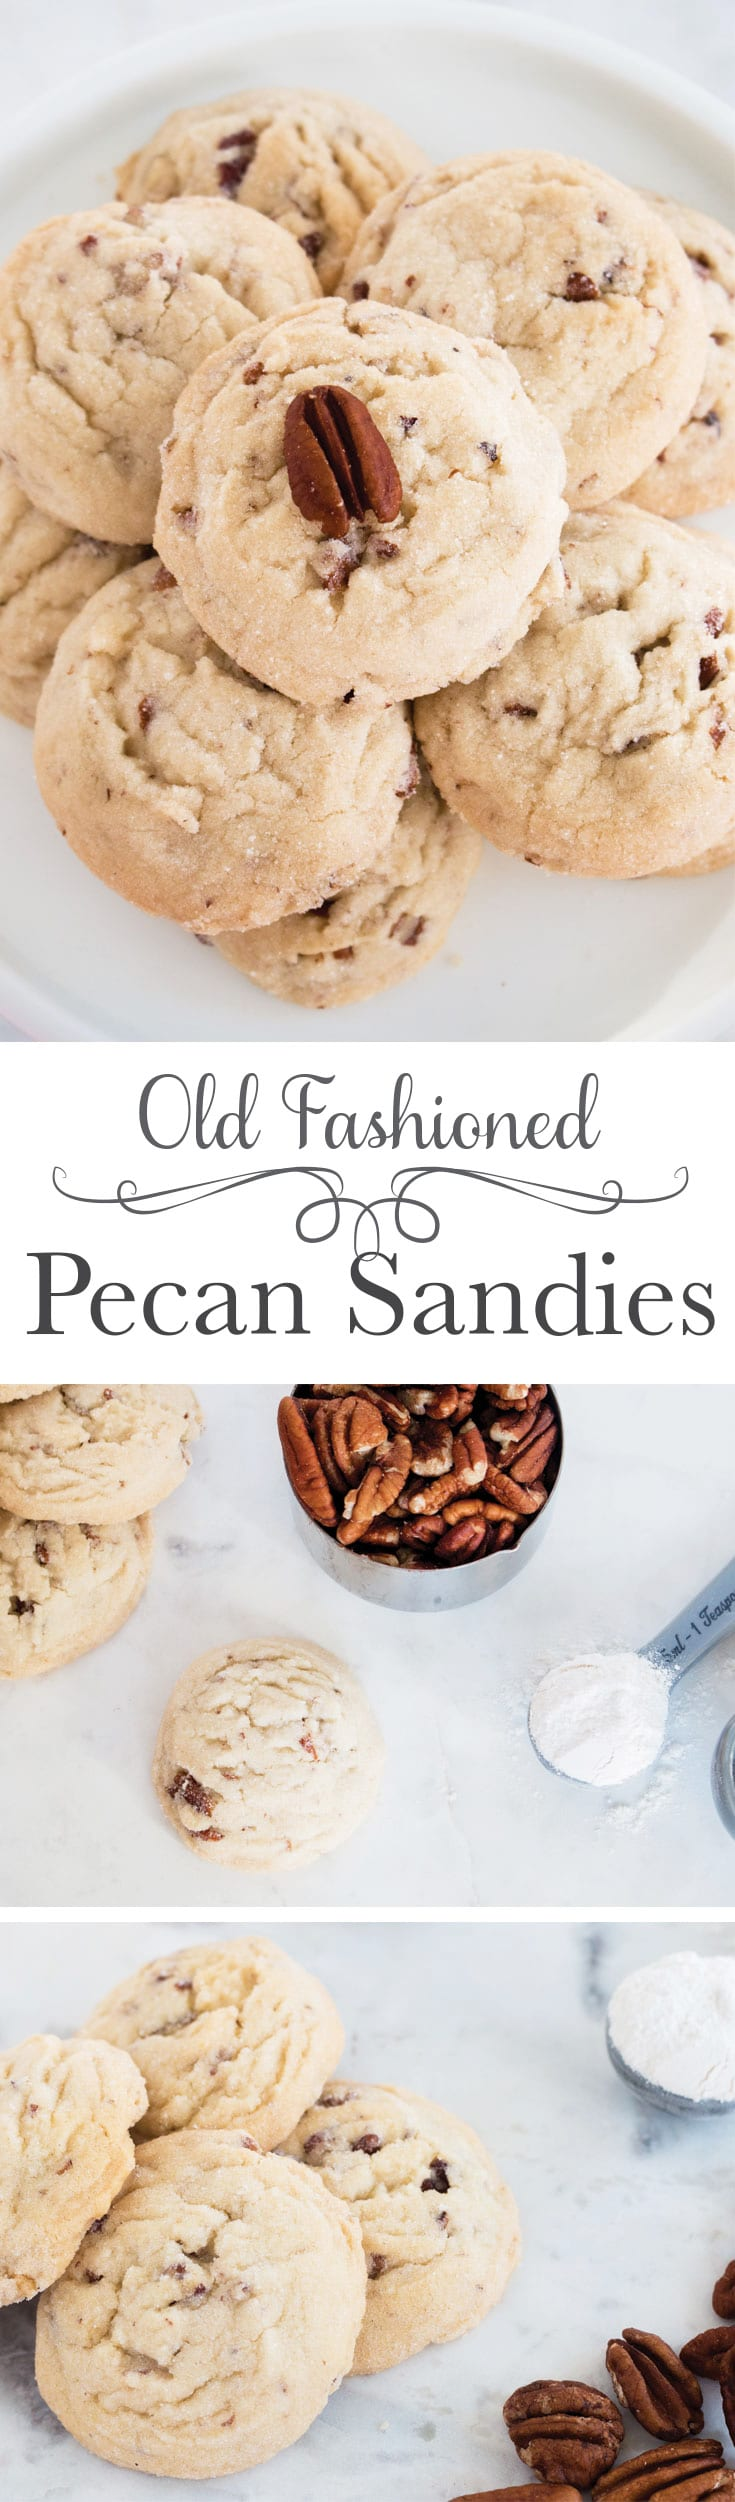 Pecan Sandies | Kitchen Trials